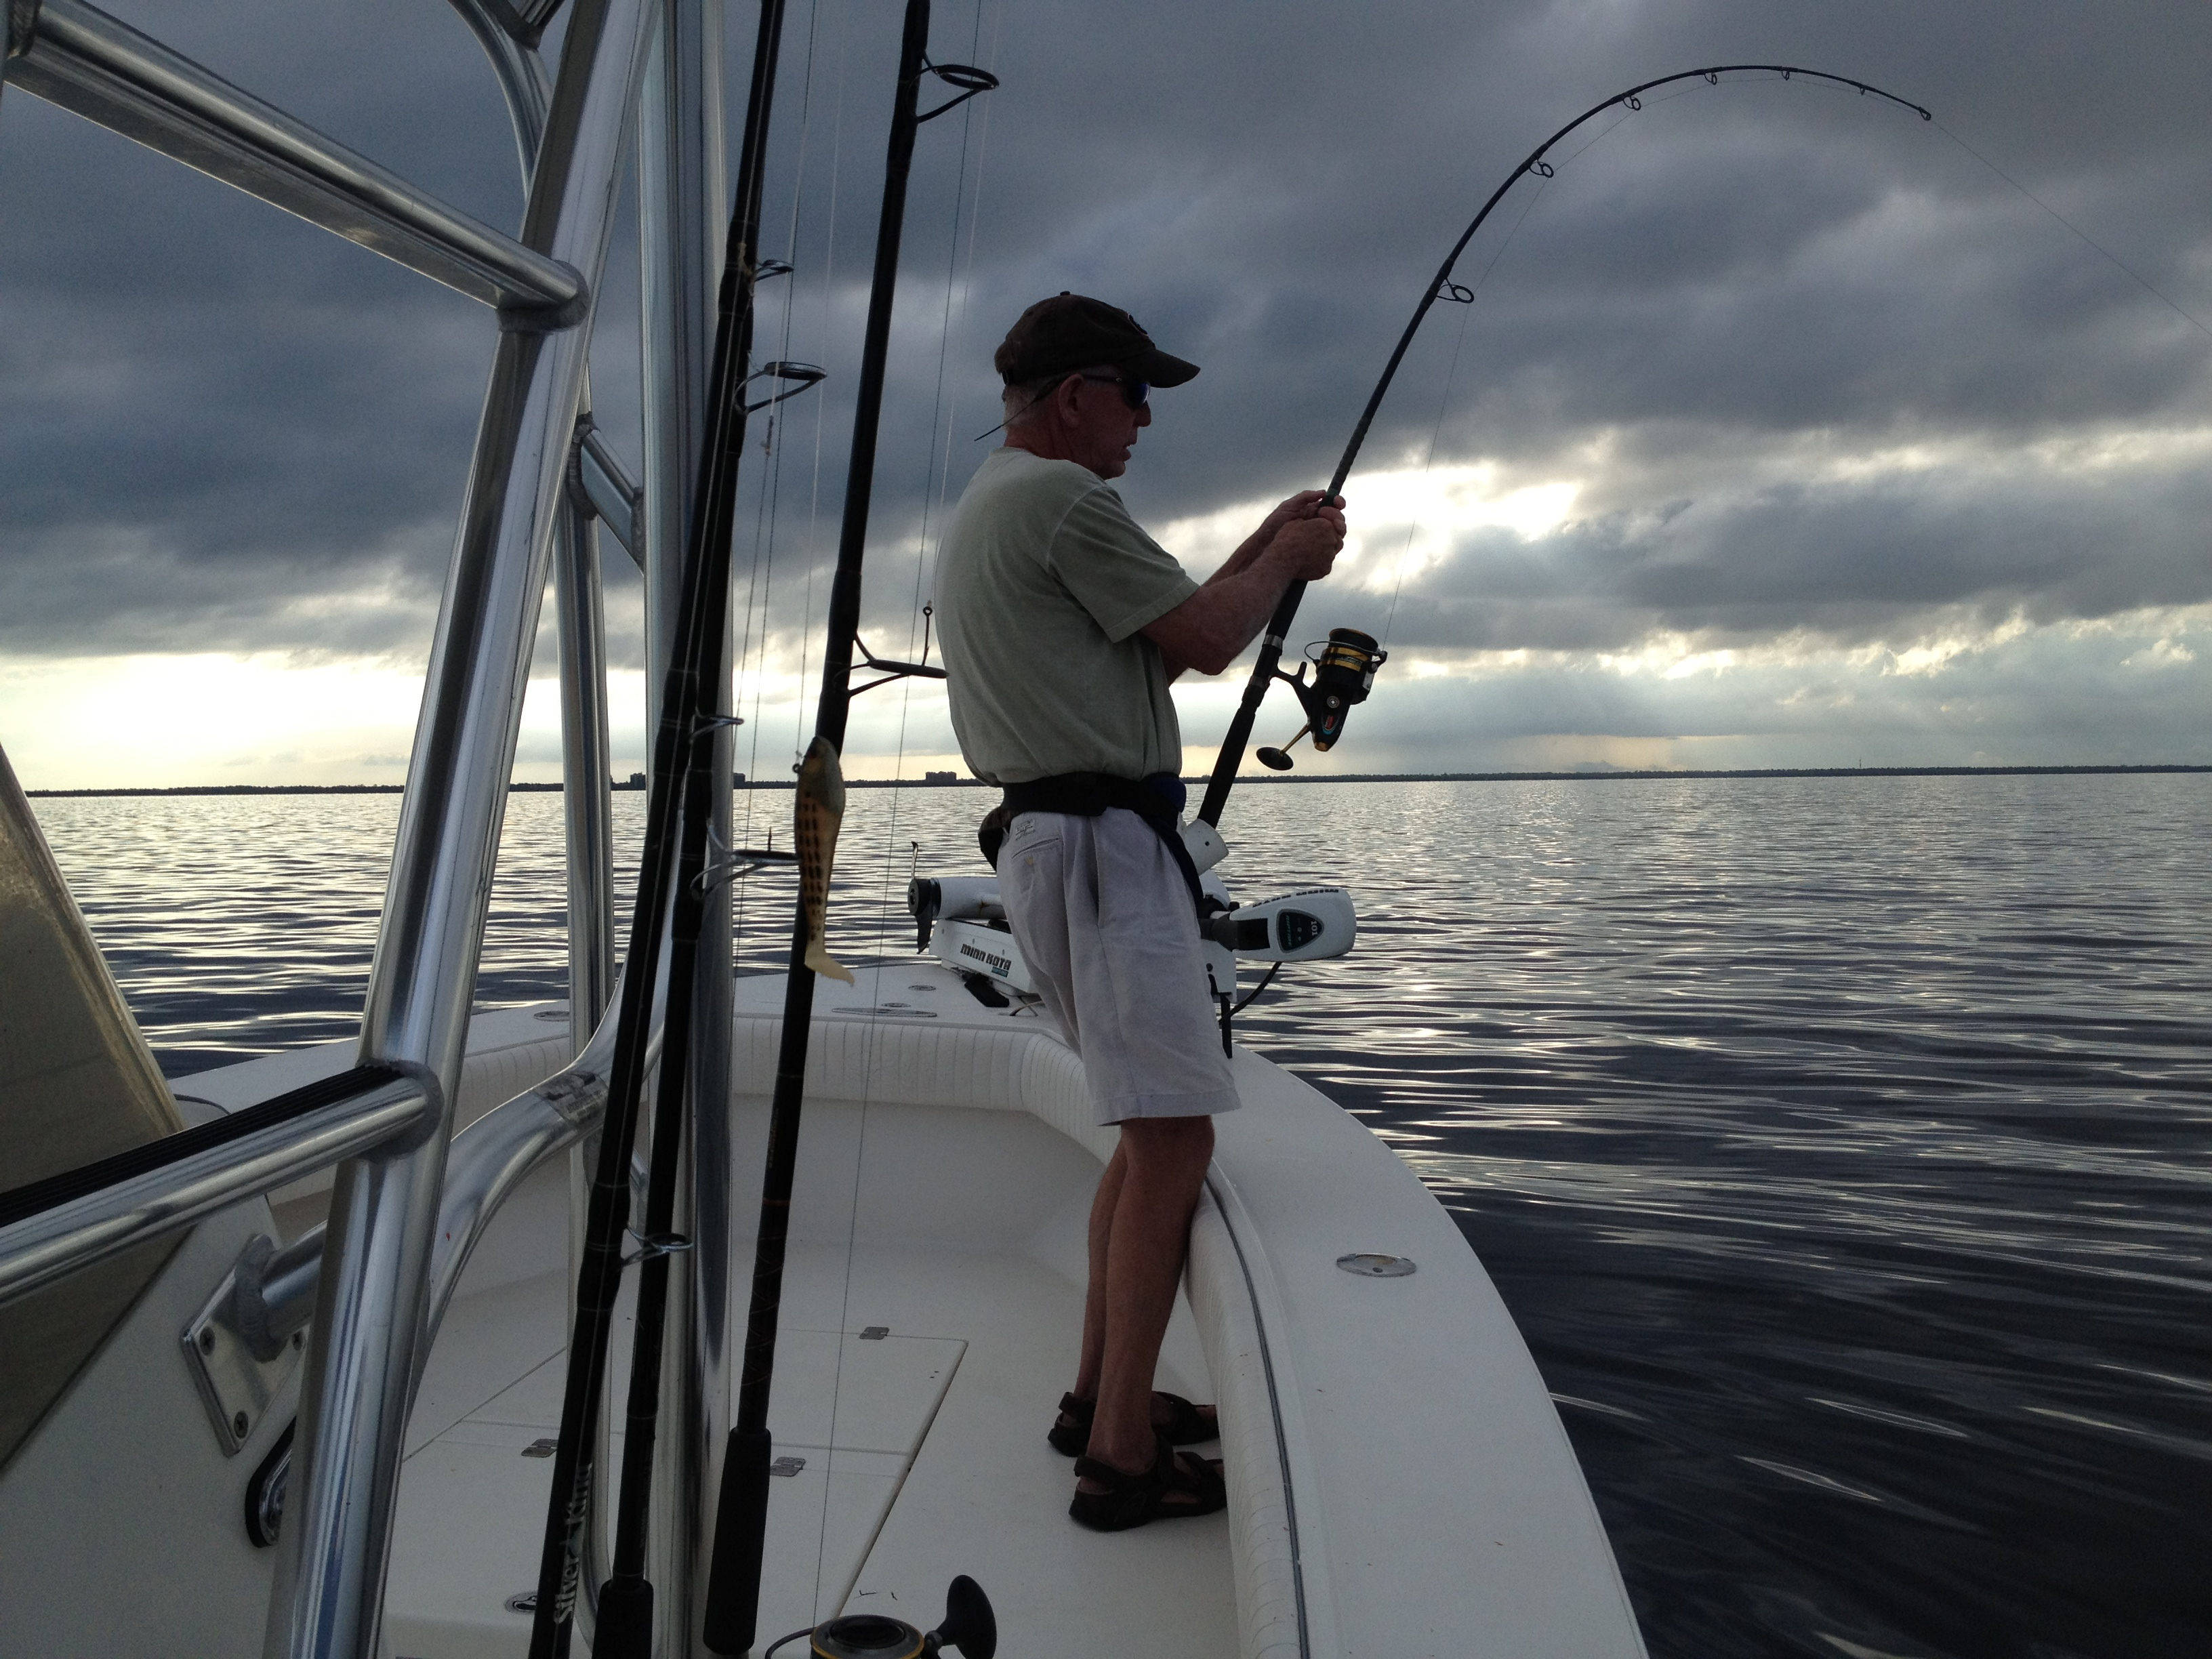 charlotte harbor tarpon fishing charters near burnt store marina, Punta Gorda, Florida